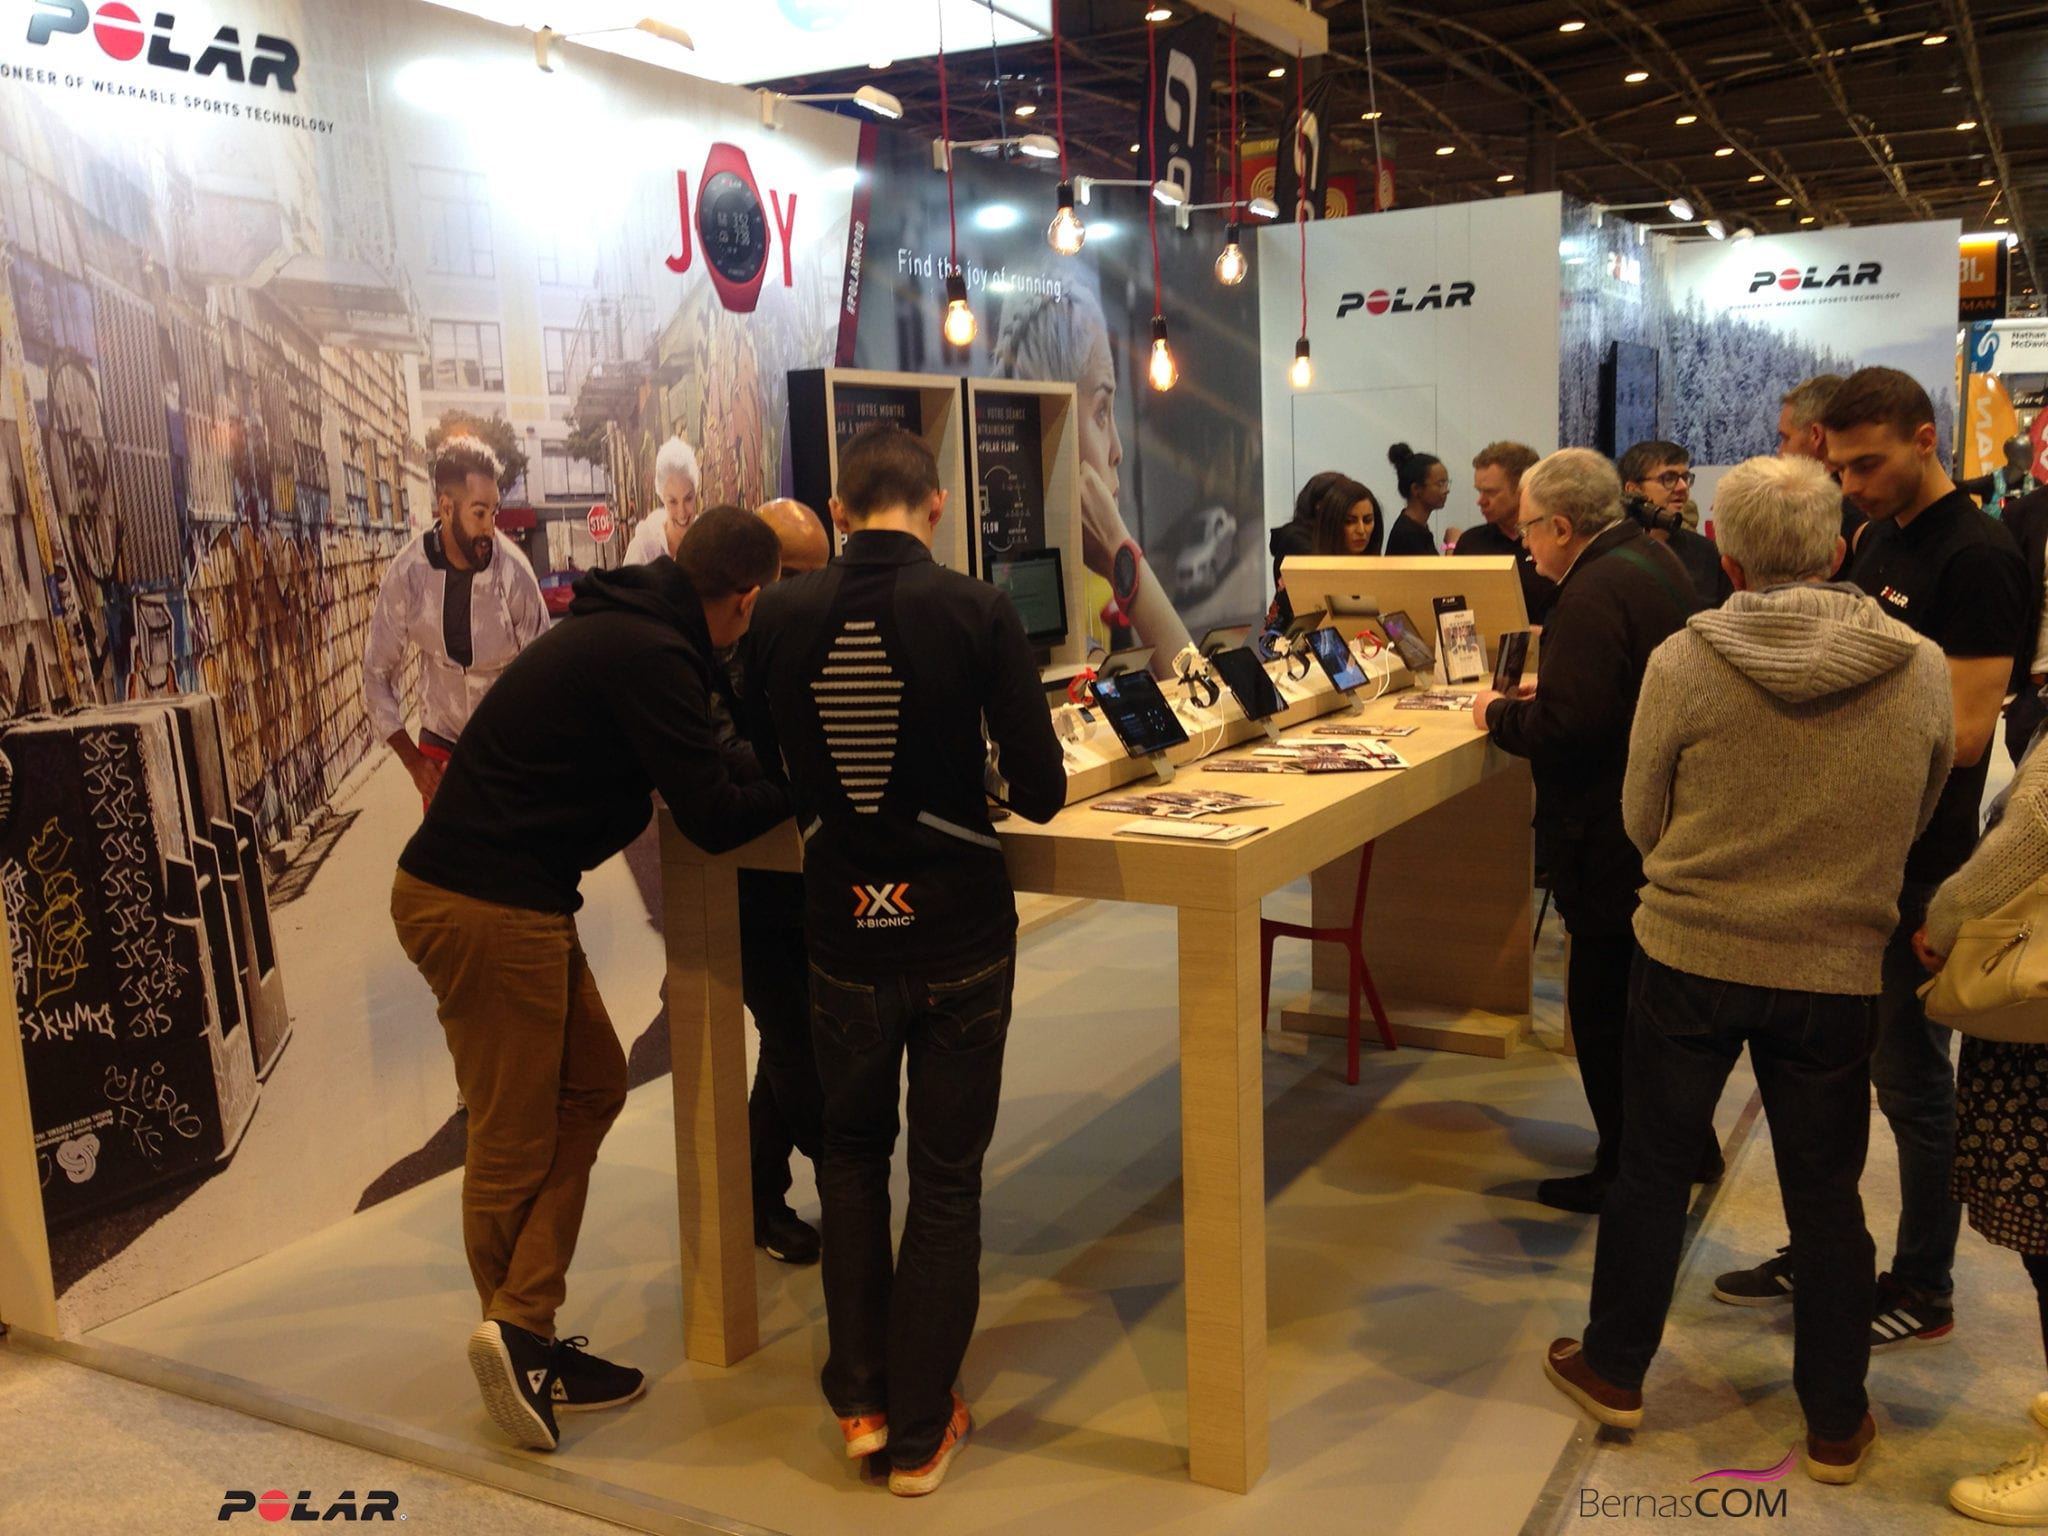 salon-du-running-polar02